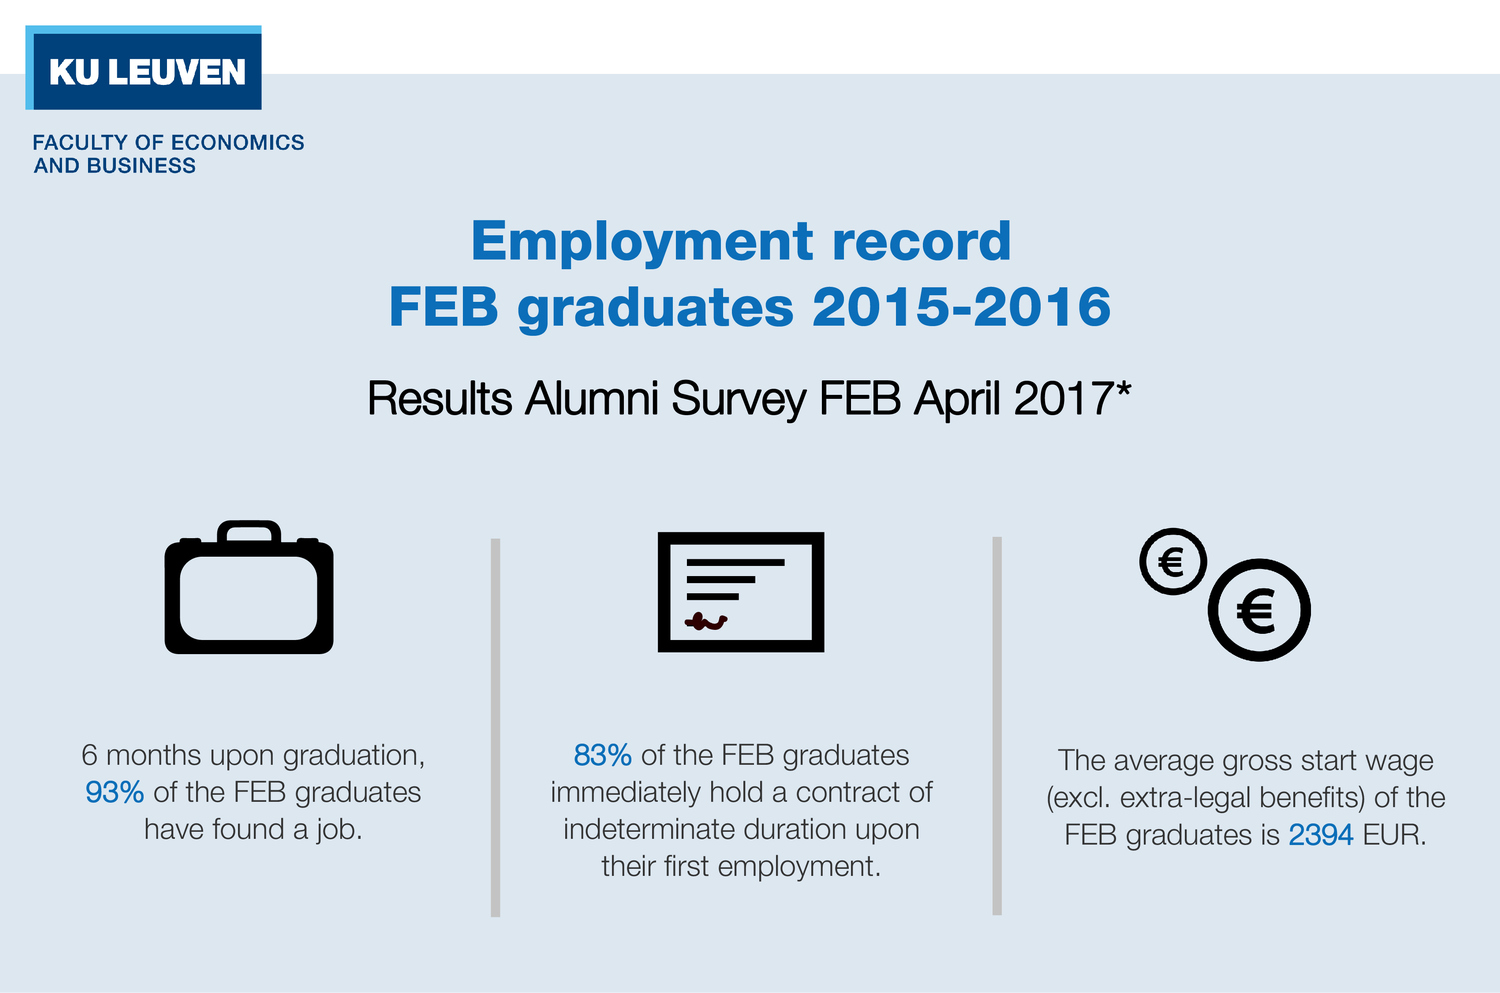 Results Alumni Survey: Employment record FEB graduates 2015-2016